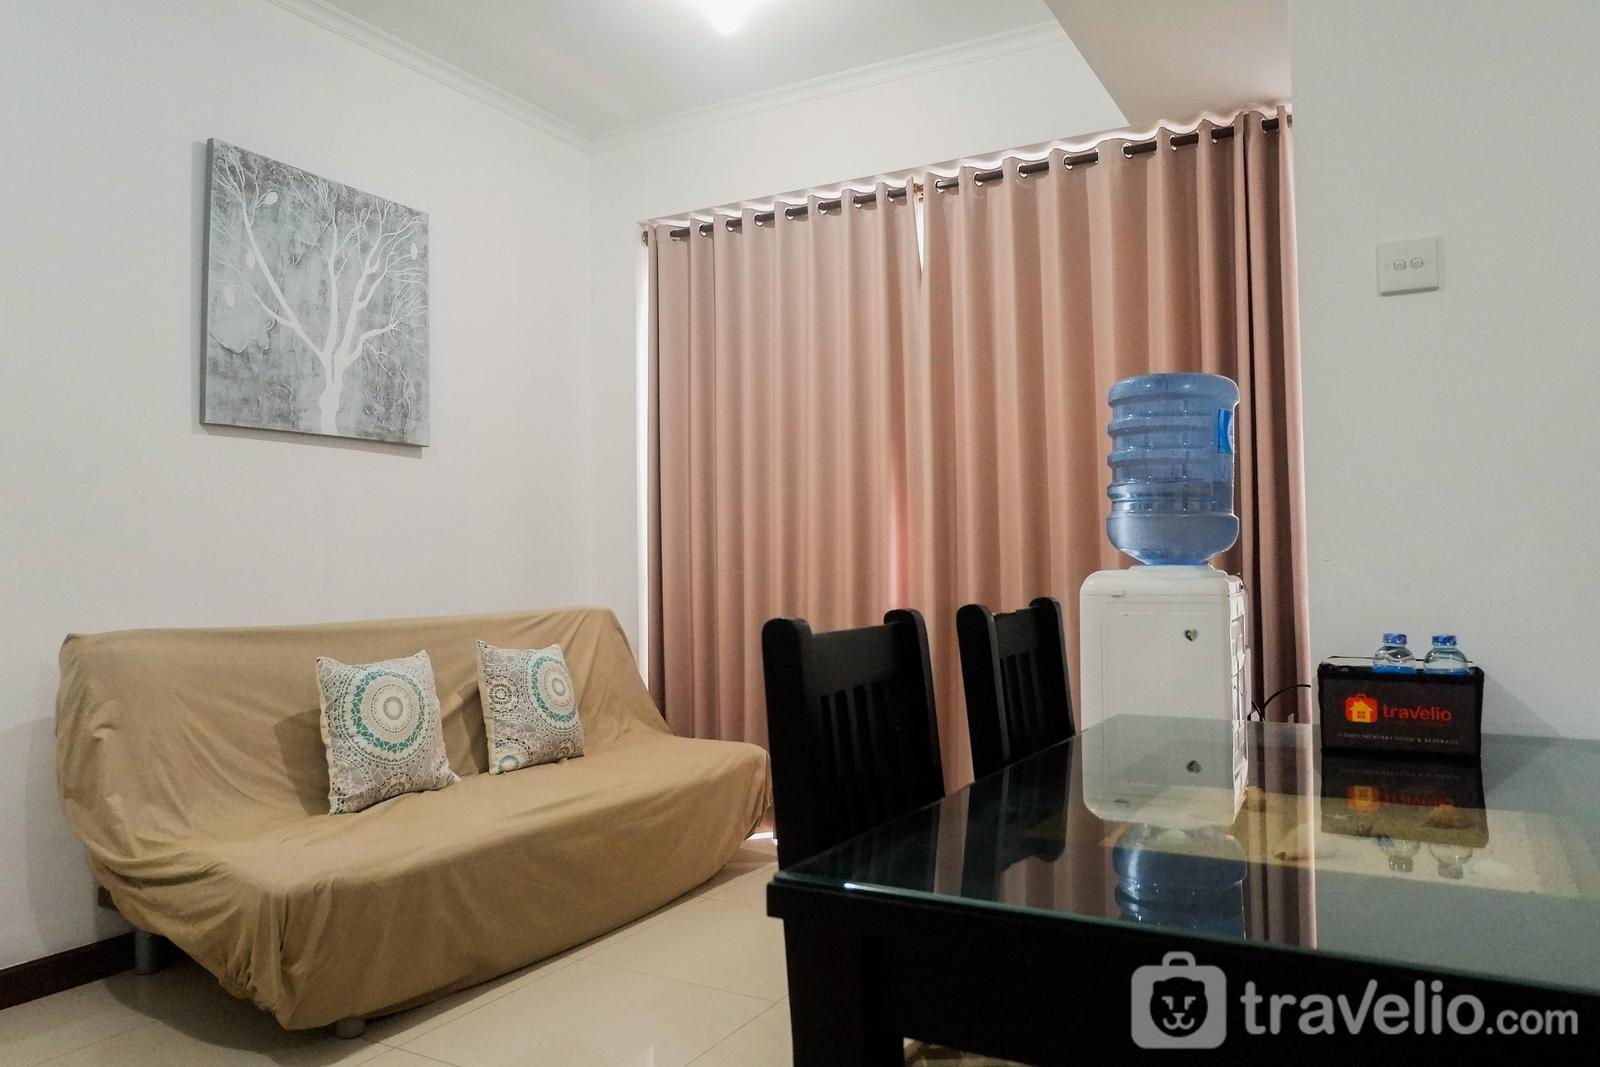 Waterplace Residence - Homey and Comfy 2BR Apartment at Waterplace Residence By Travelio